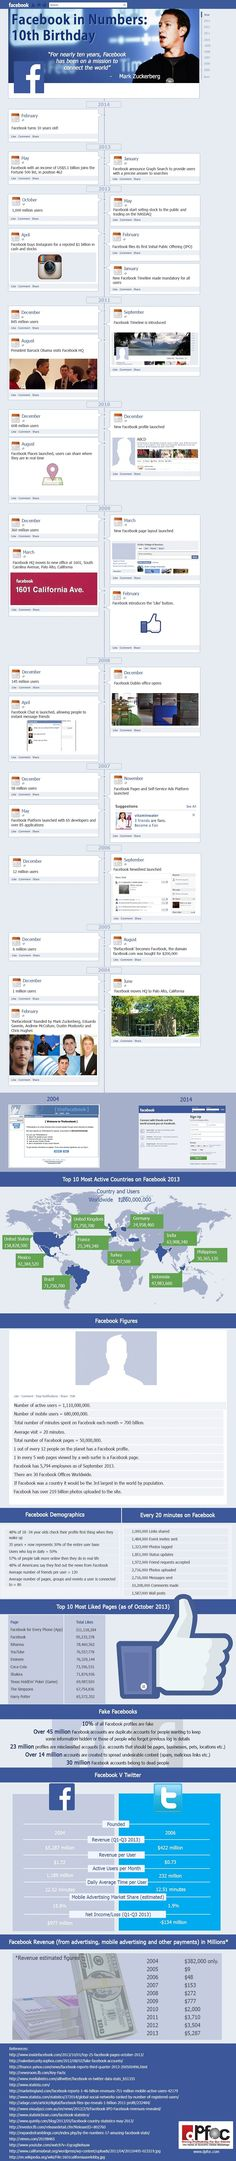 "One of the best and most popular social networks ""Facebook"" is going to celebrate its 10th birthday on 4th Februray 2014"